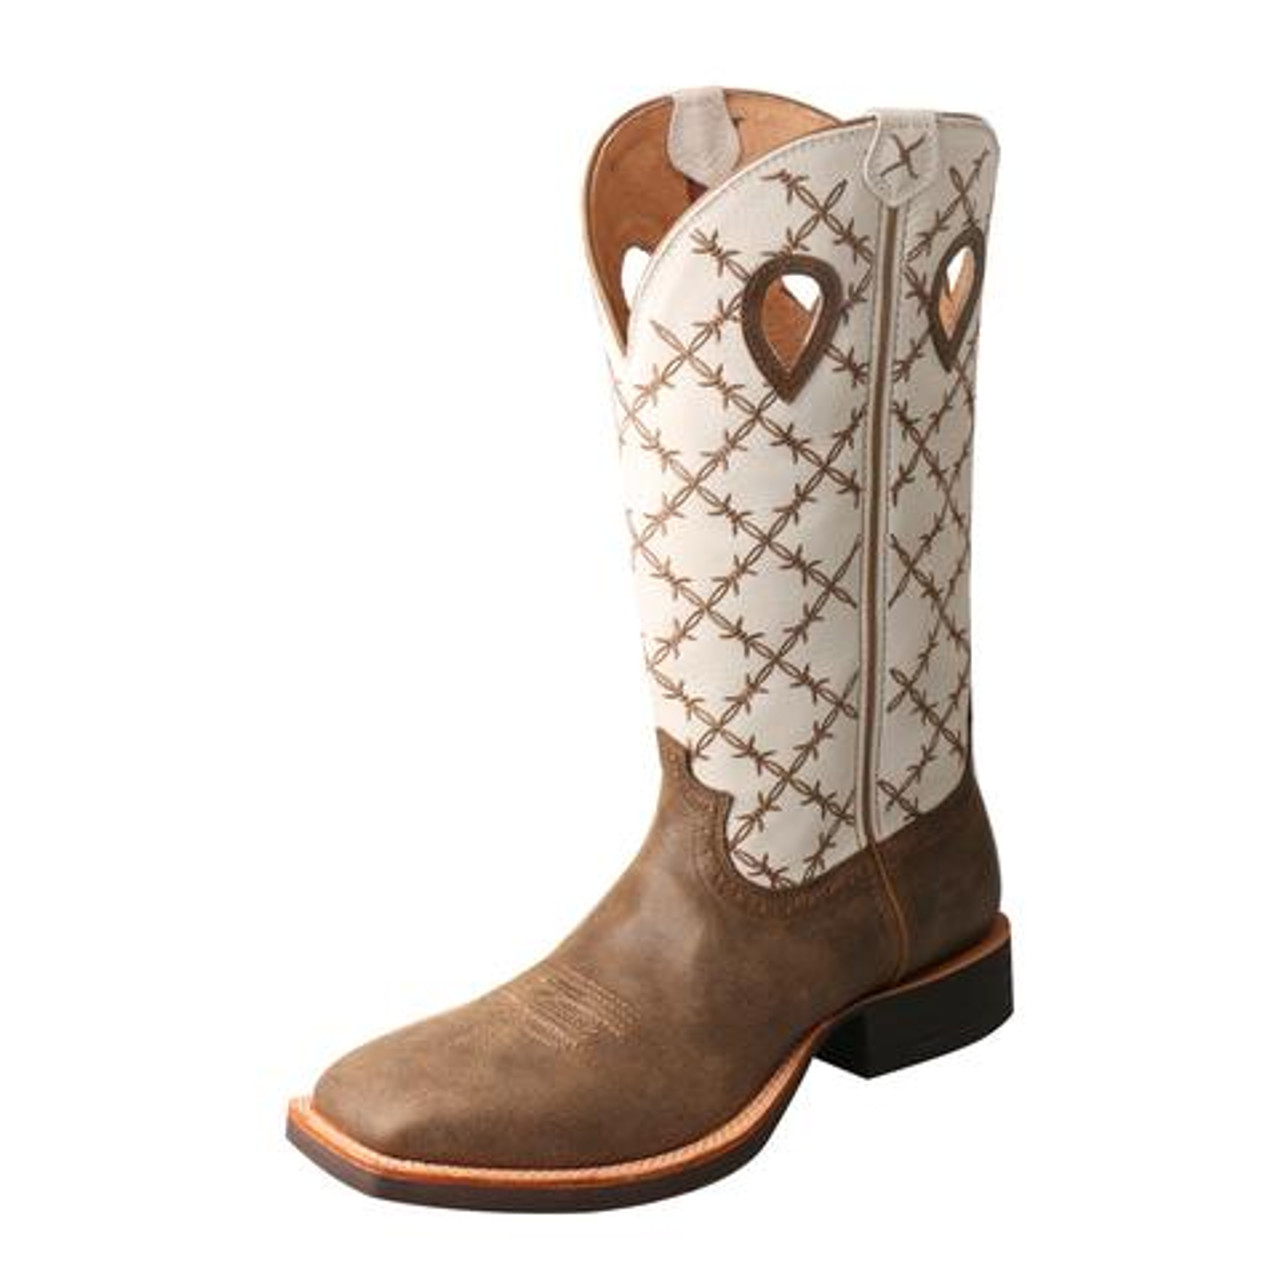 6b79ea85d08 Twisted X Men's Boots - Ruff Stock – - Bomber/White